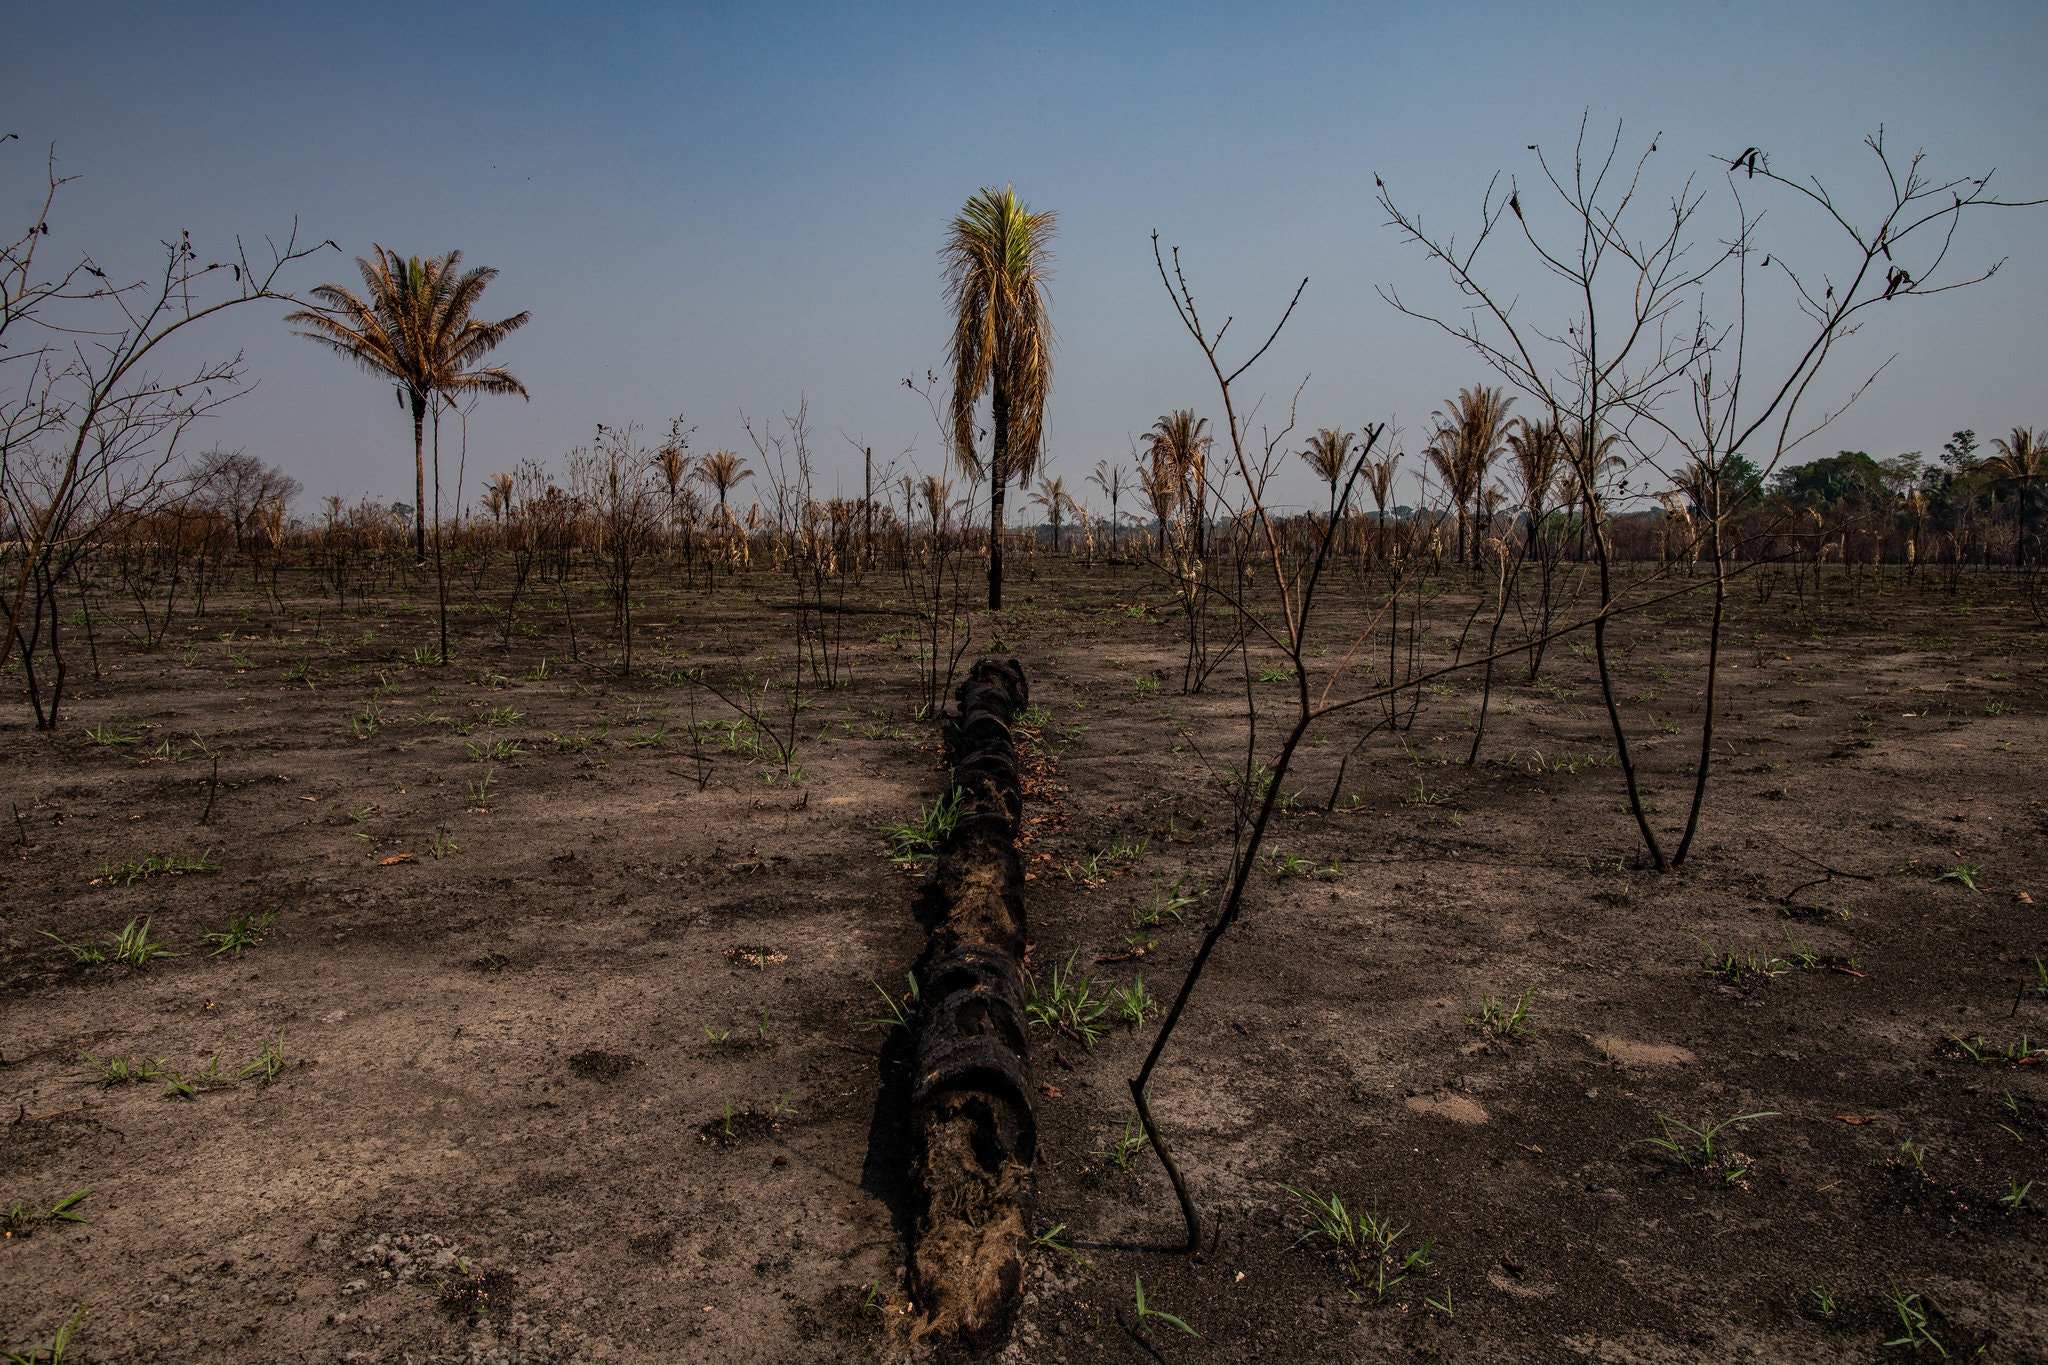 As fires rage across the Amazon, a growing number of scientists are raising the alarm about a nightmare scenario that could see much of the world's largest rainforest erased from the earth. NY Times, 8/30/2019   https://www.nytimes.com/2019/08/30/world/americas/amazon-rainforest-fires-climate.html